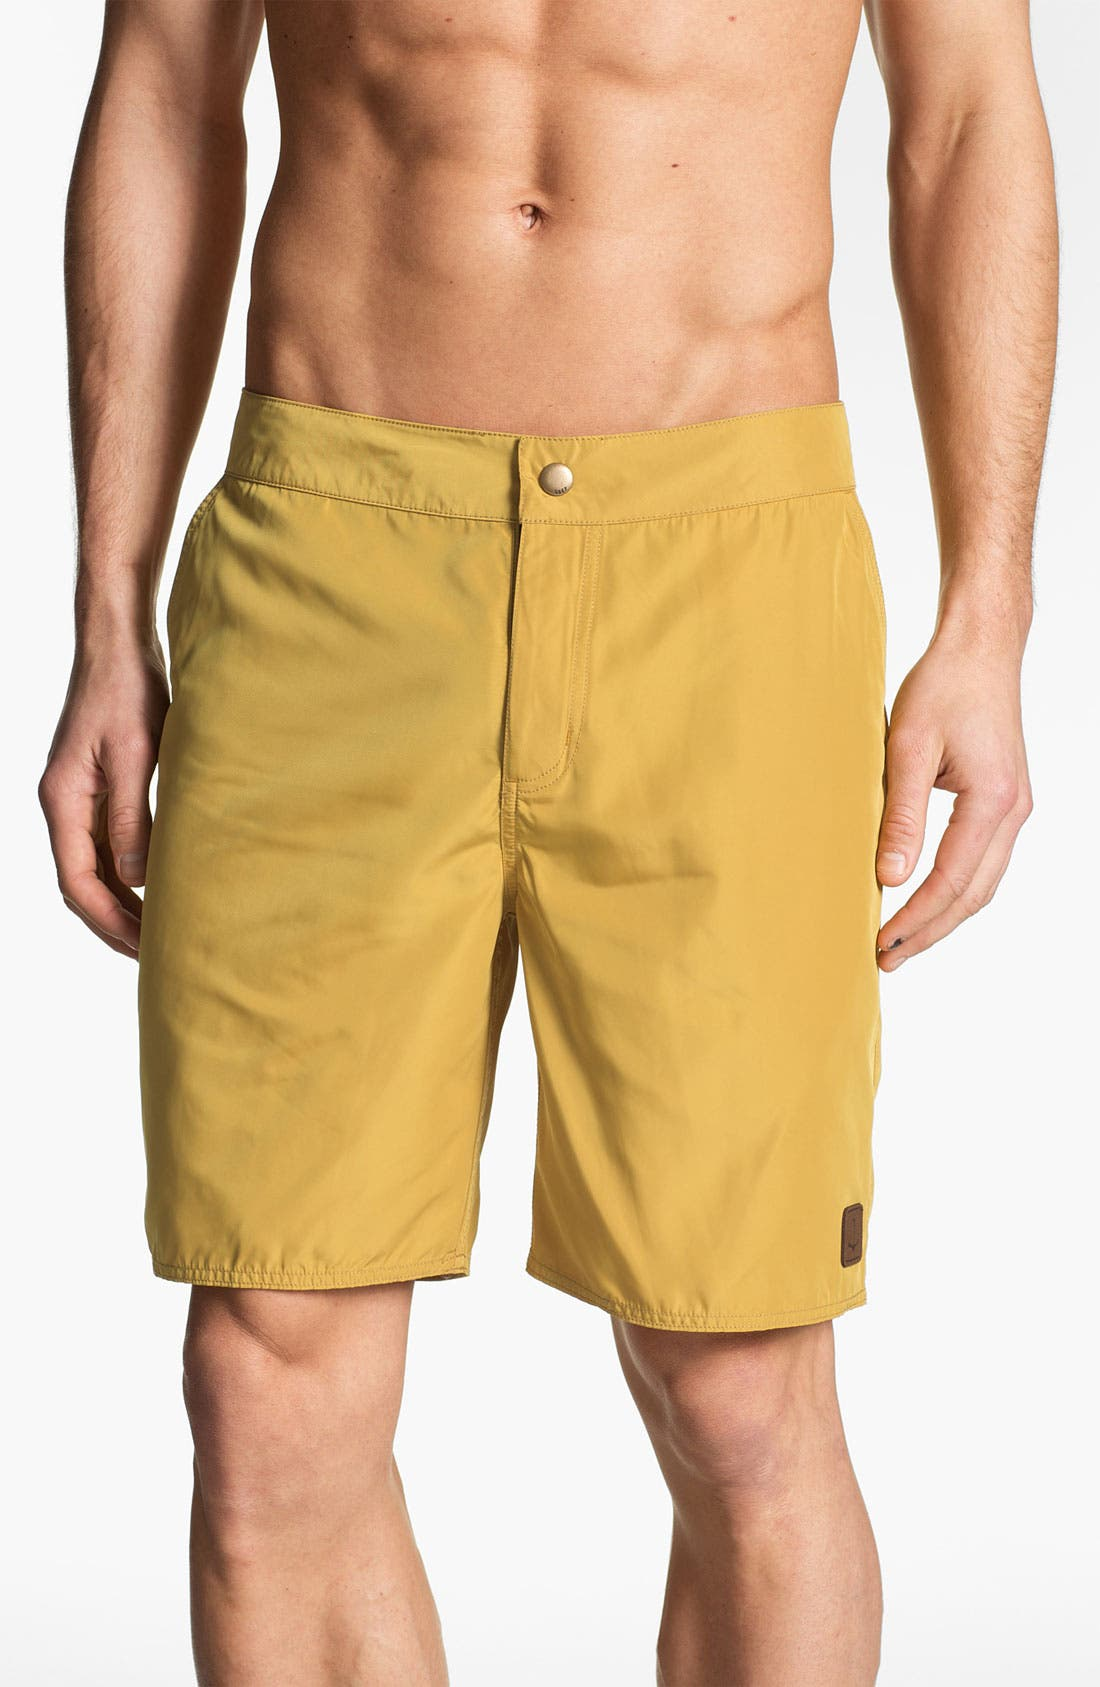 Alternate Image 1 Selected - Obey 'Harbor Master II' Board Shorts